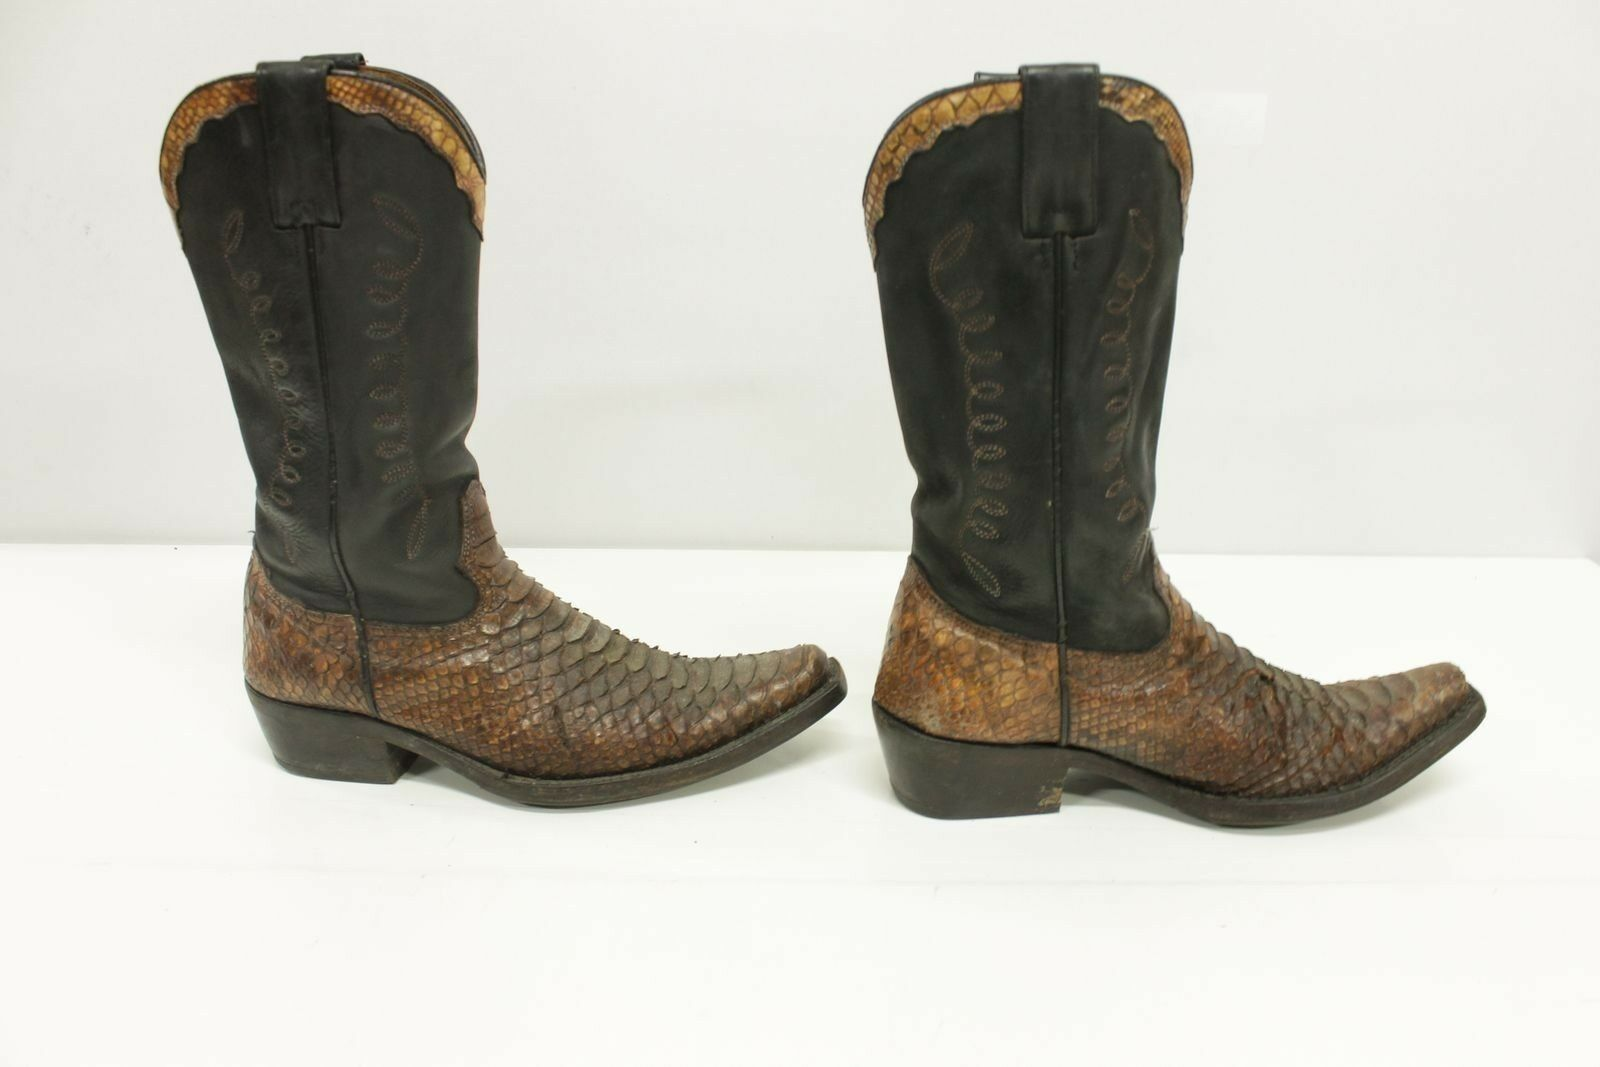 Stivali boots western n.40 (Cod.ST704) camperos cowboy western boots country Usato uomo 53a42a